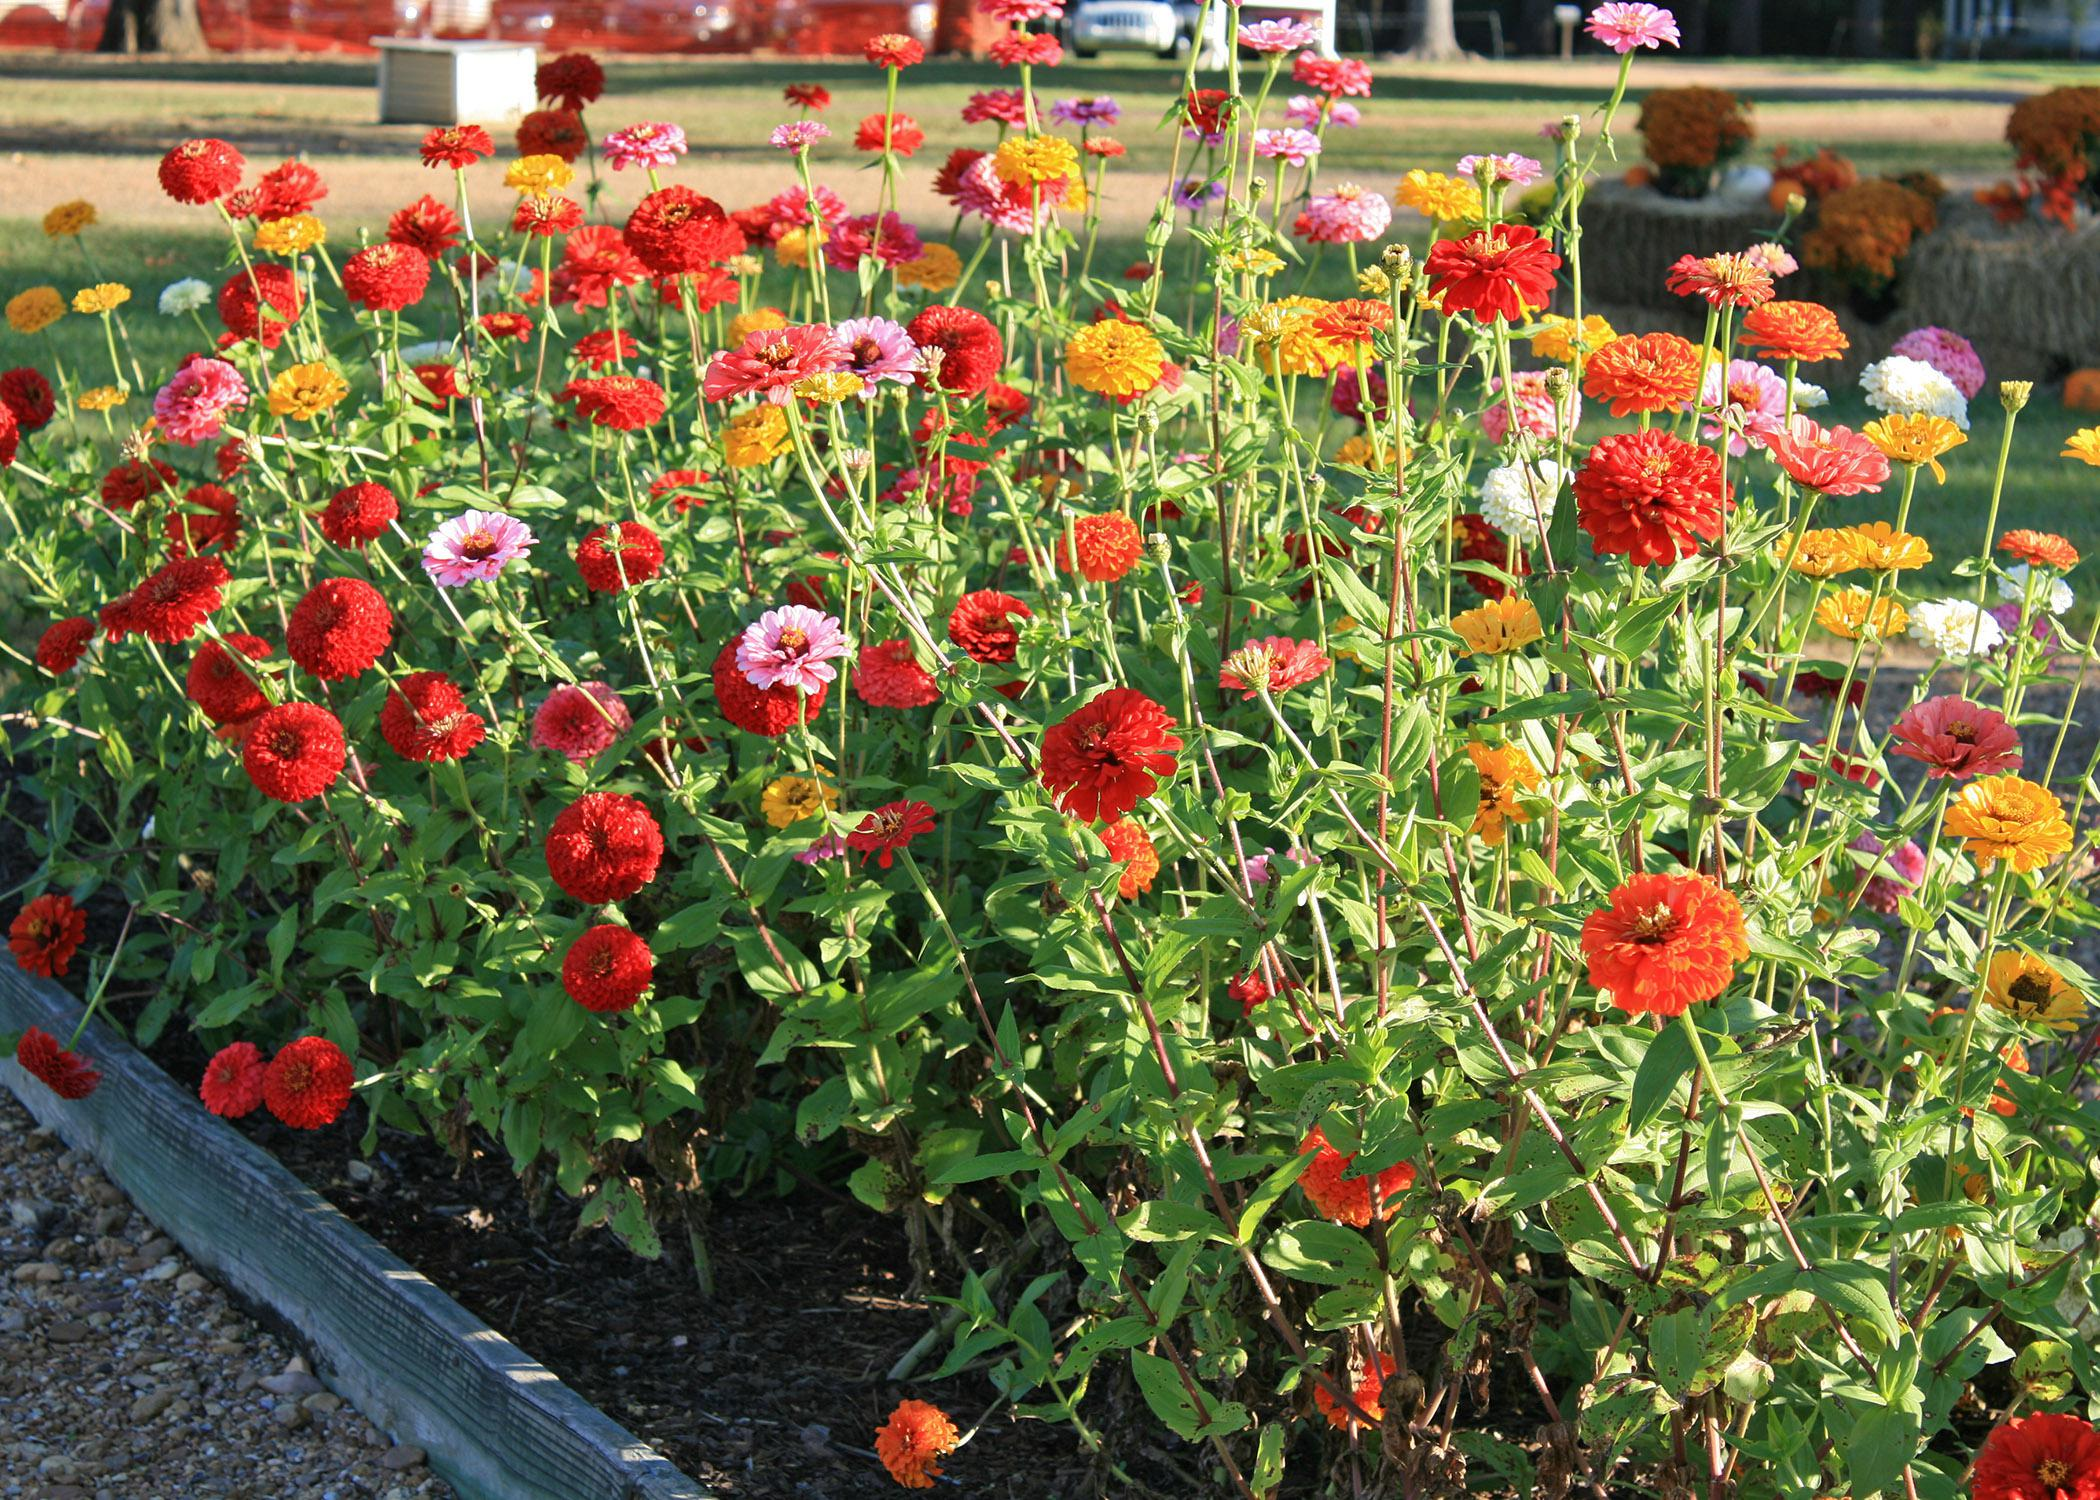 These Benary's Giant mix zinnias are must-haves for those wanting long-lasting cut flowers. Their height makes them perfect as a background in the summer flower bed, and they produce an abundant supply of beautiful flowers. (Photo by MSU Extension Service/Gary Bachman)